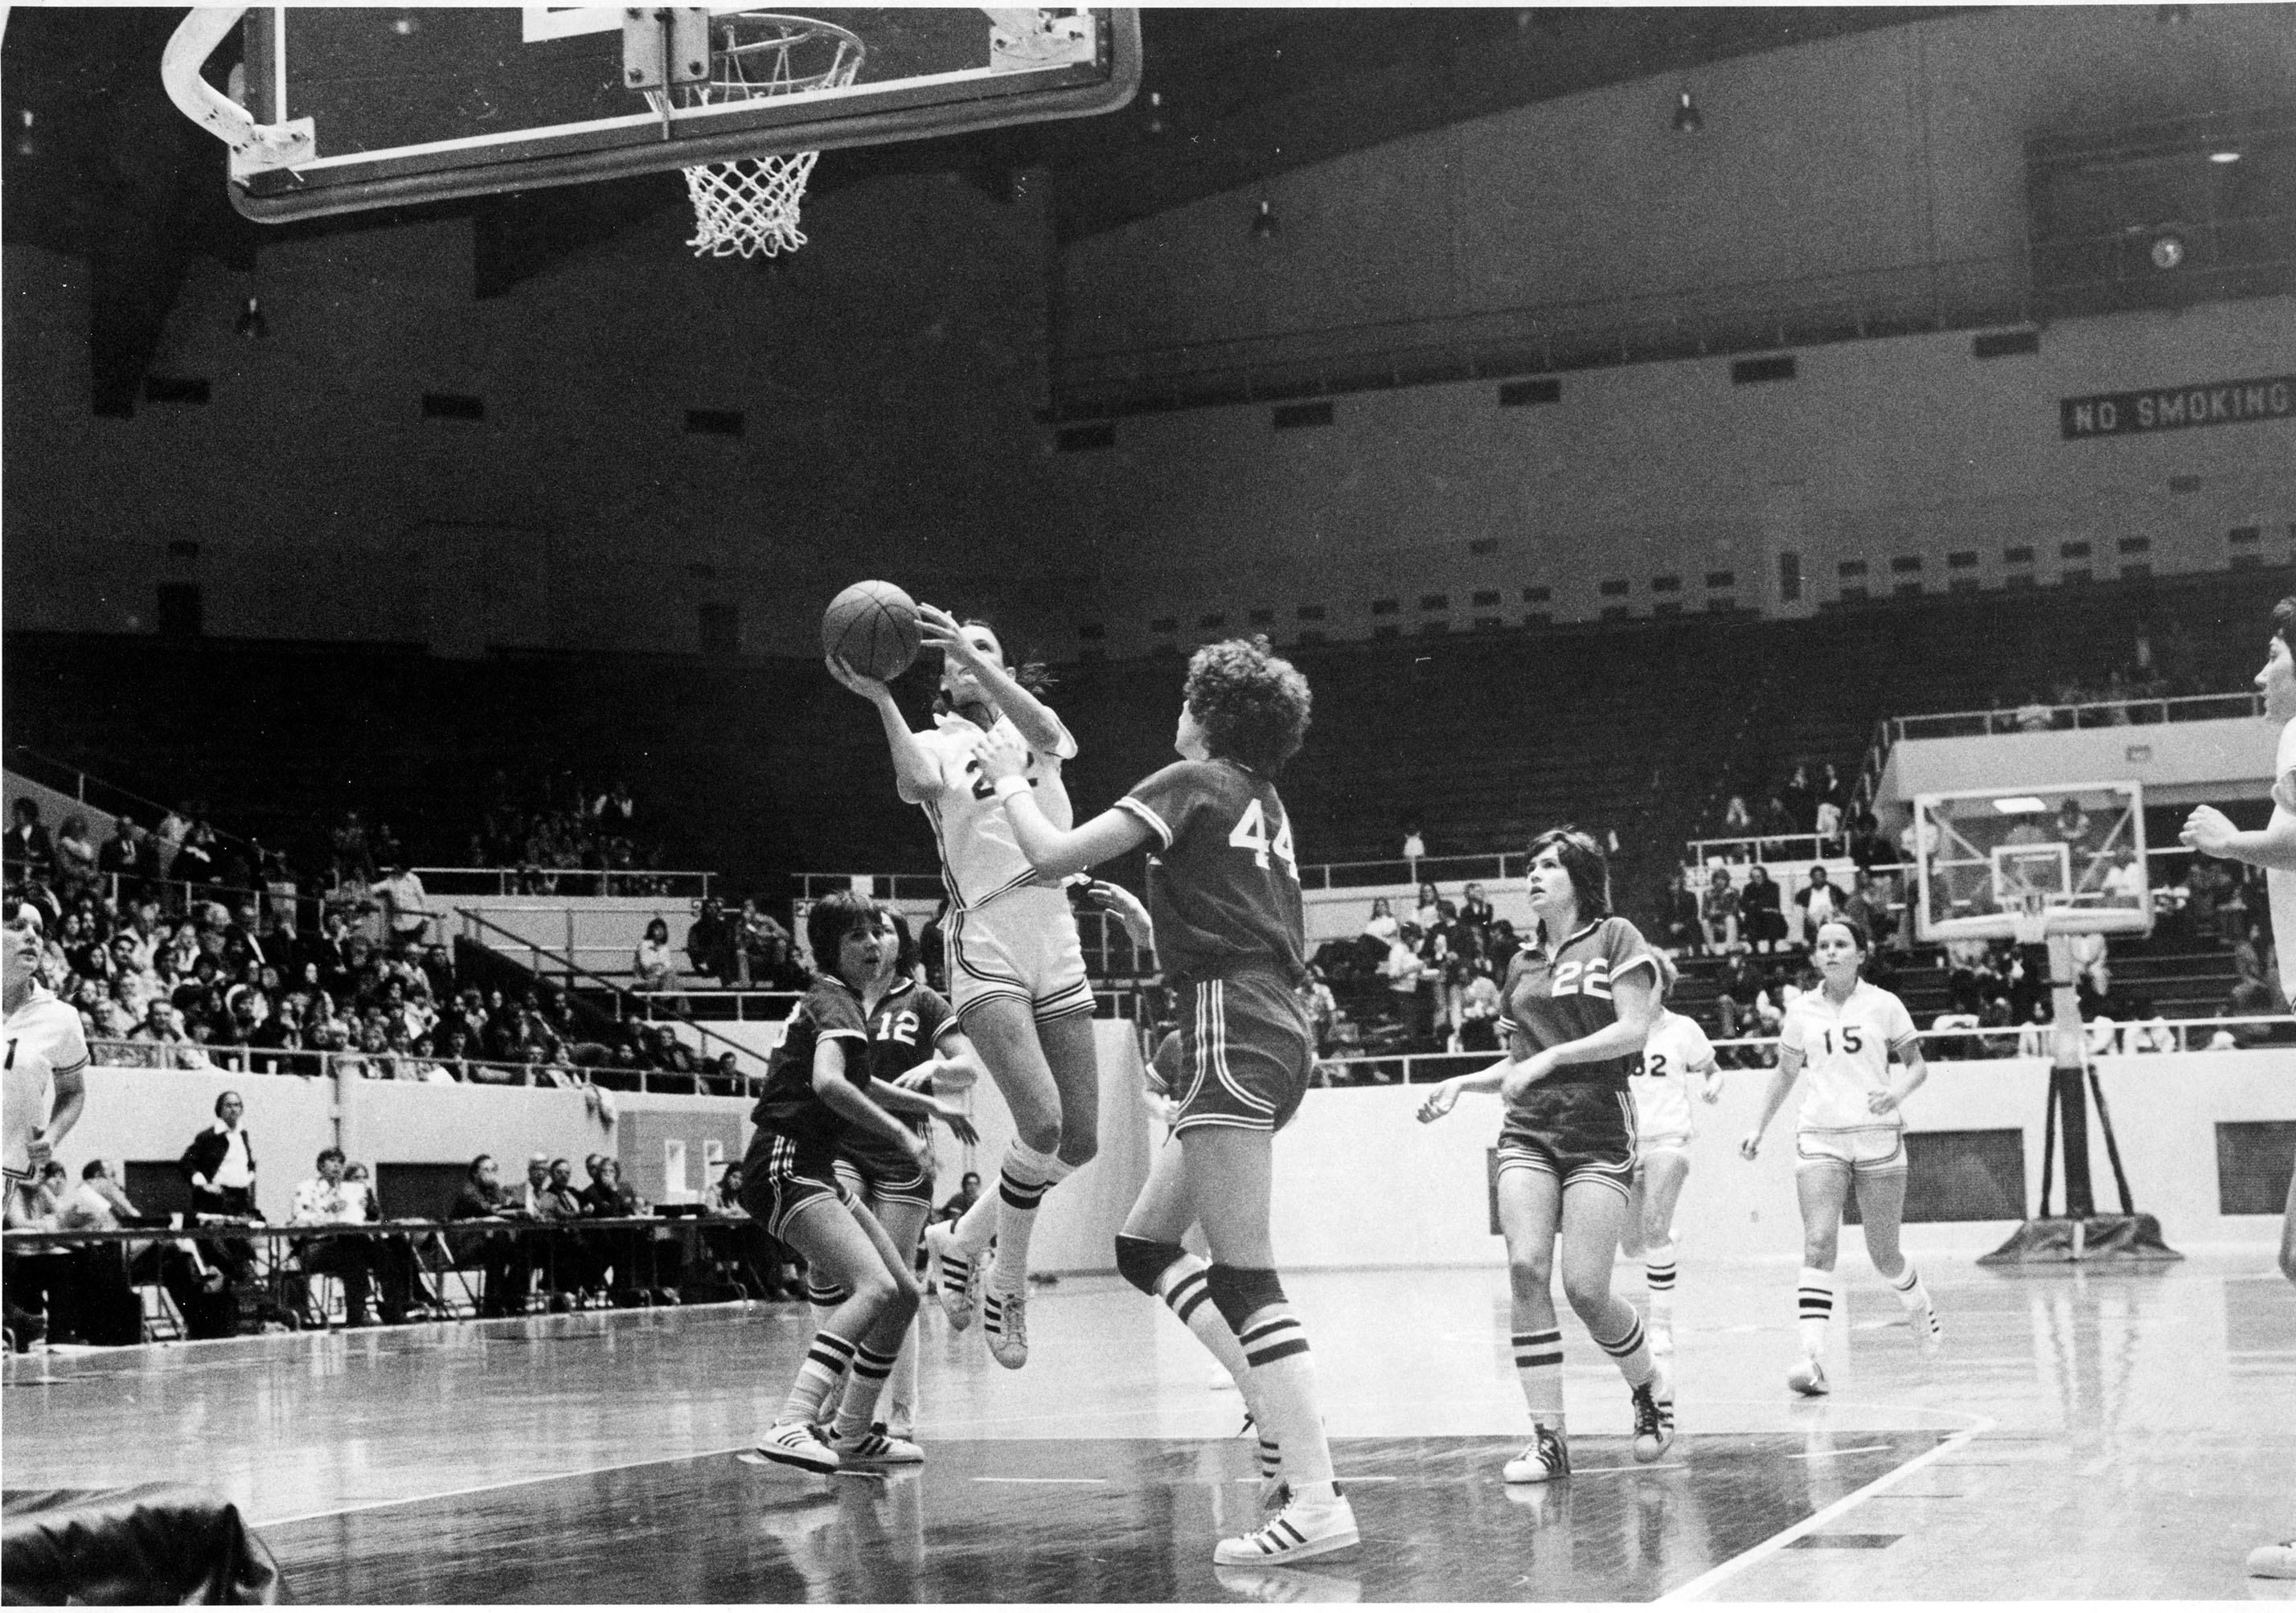 The women's basketball team playing a game in the Alumni Coliseum, ca. 1976.